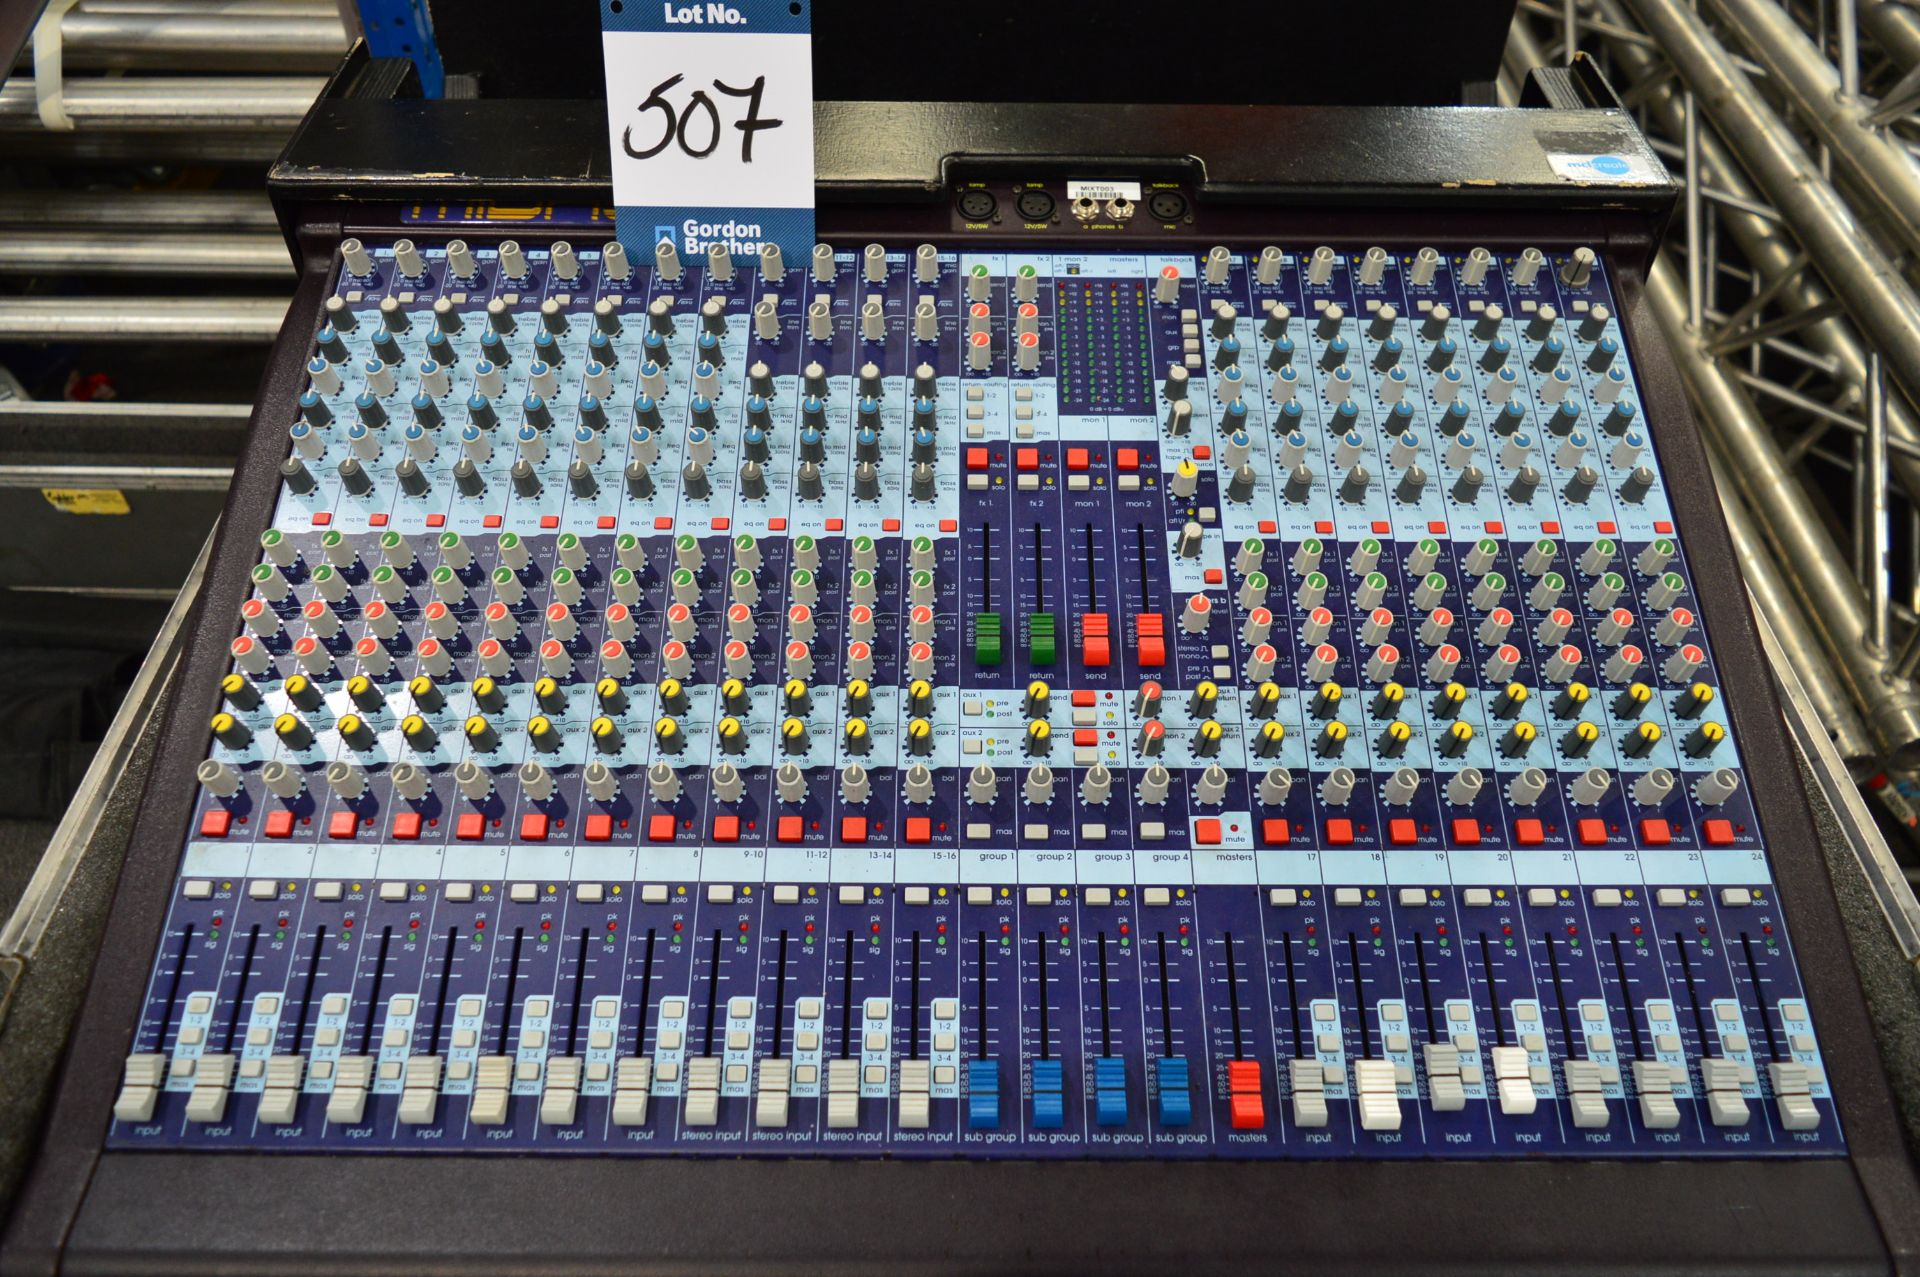 Lot 507 - Midas, Venice 240 24 channel professional live sou